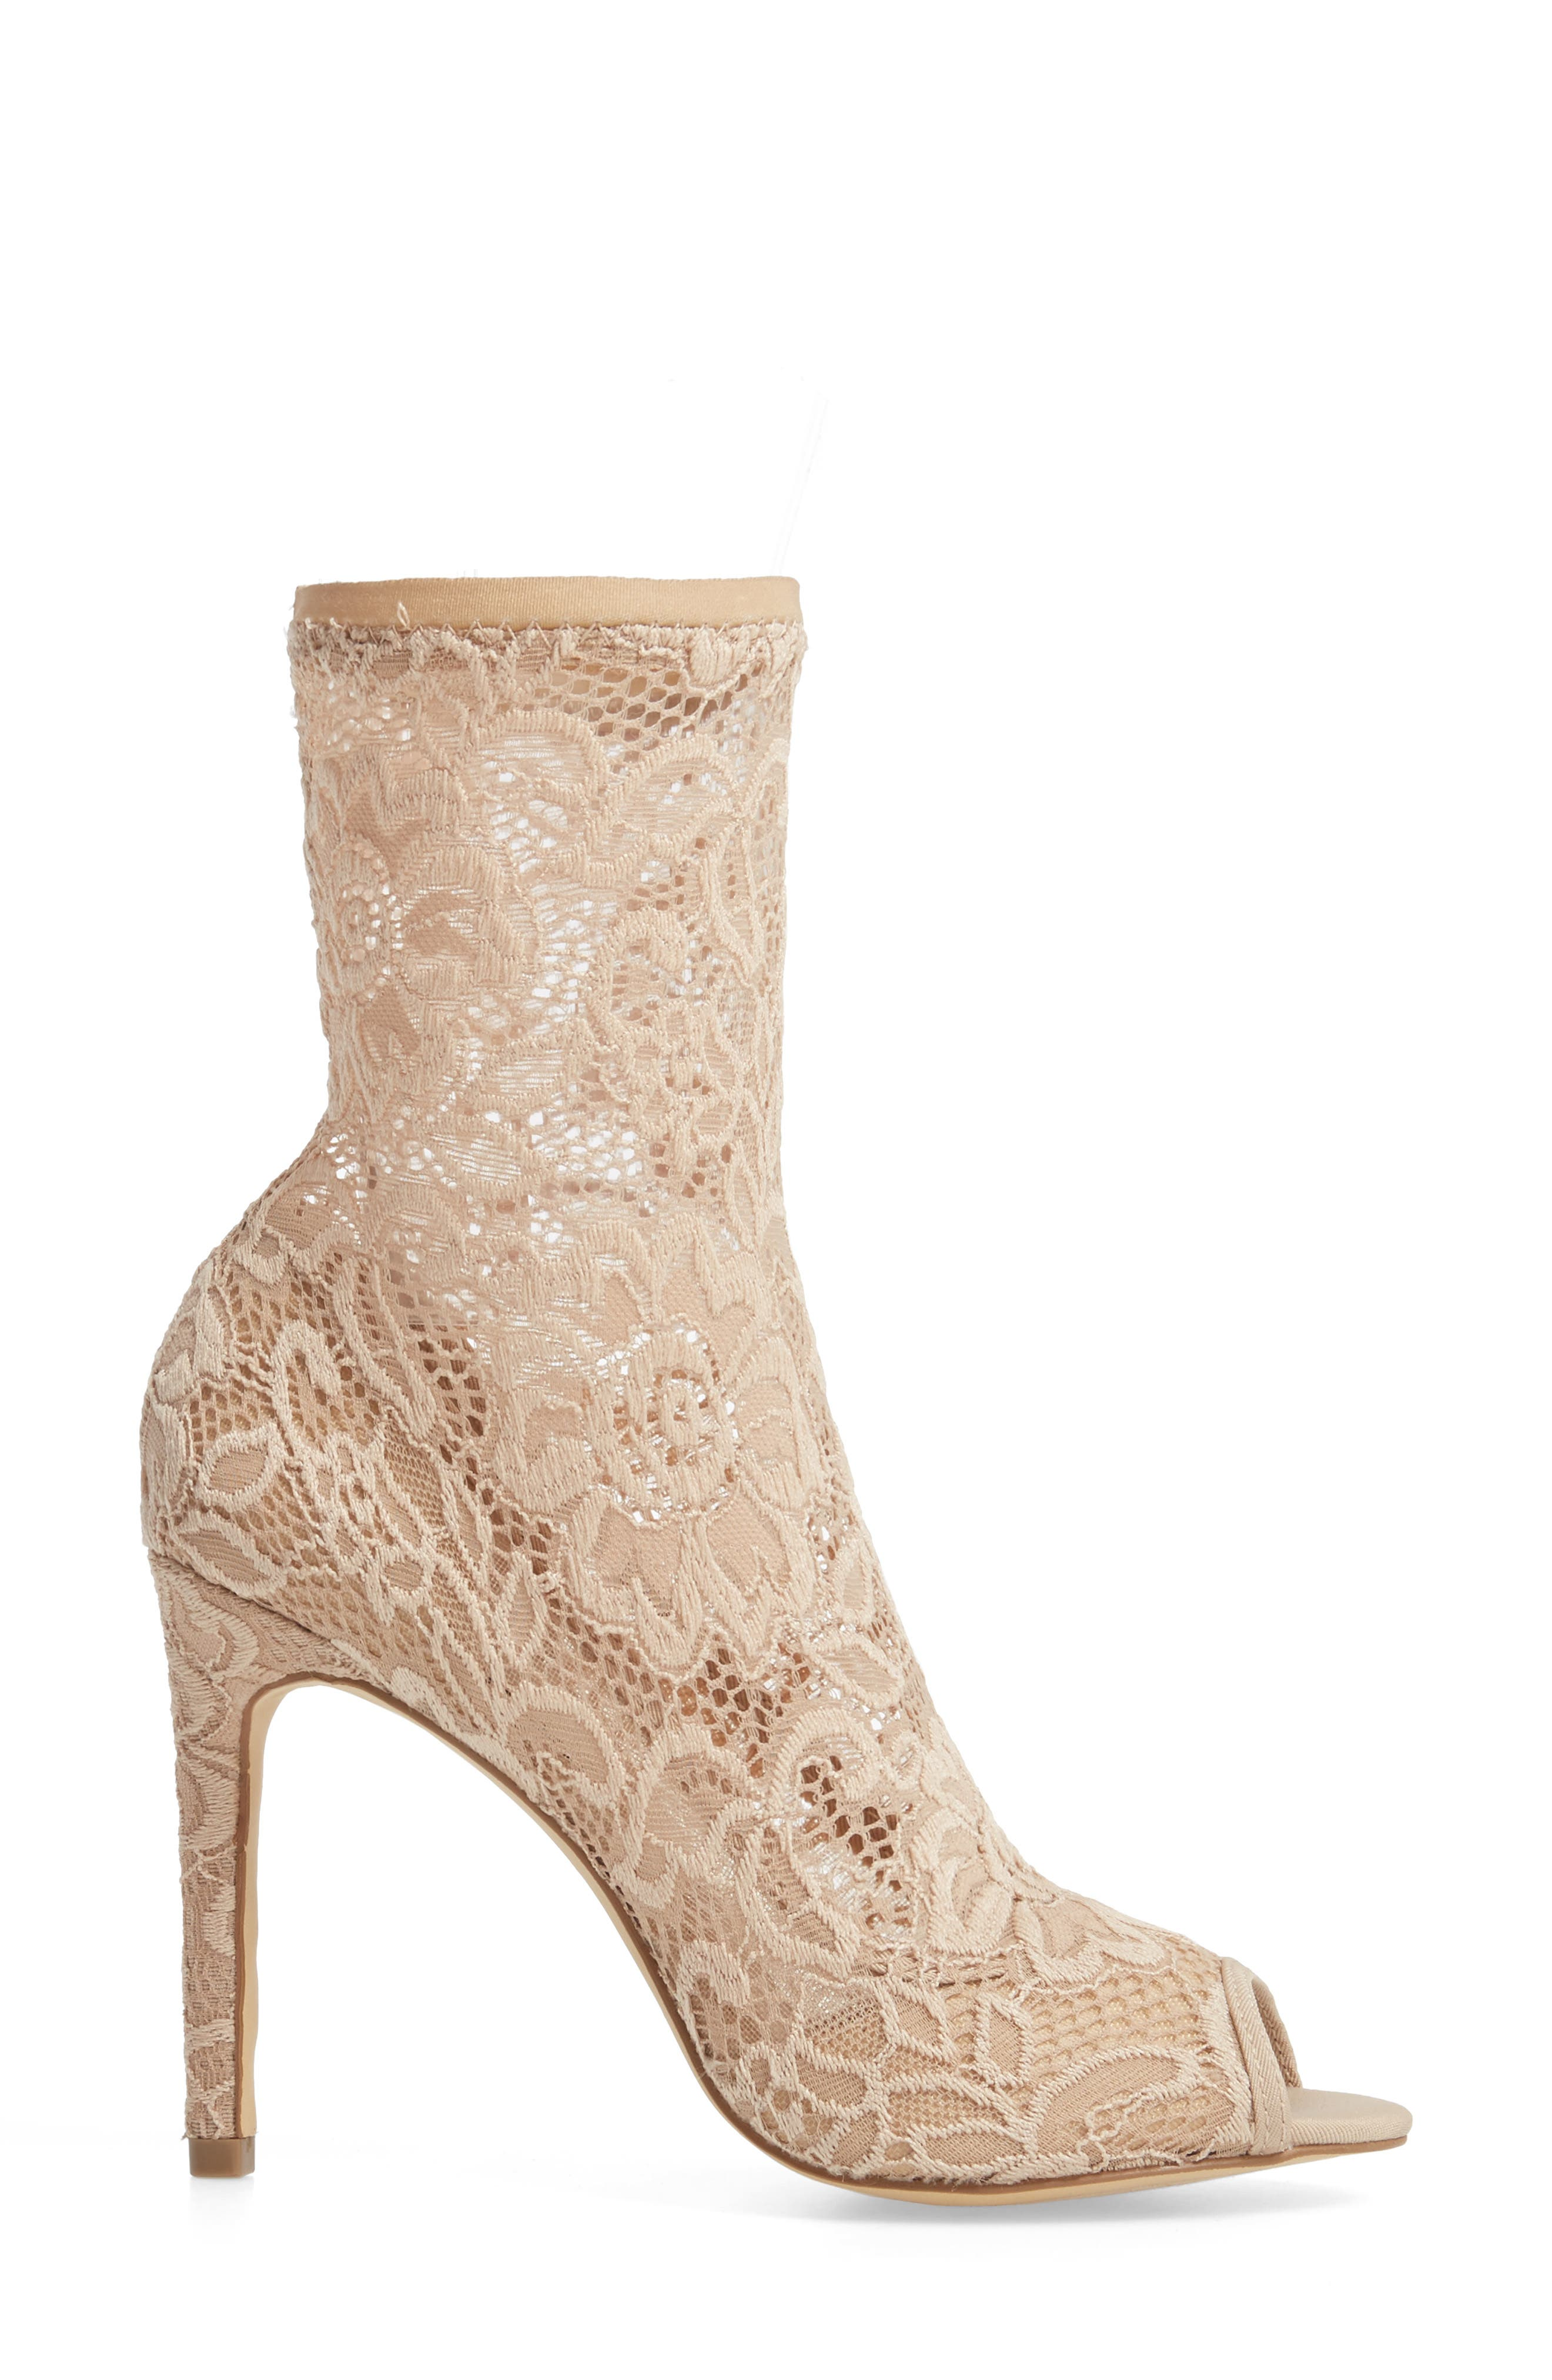 CHARLES BY CHARLES DAVID, Imaginary Lace Sock Bootie, Alternate thumbnail 3, color, NUDE FABRIC